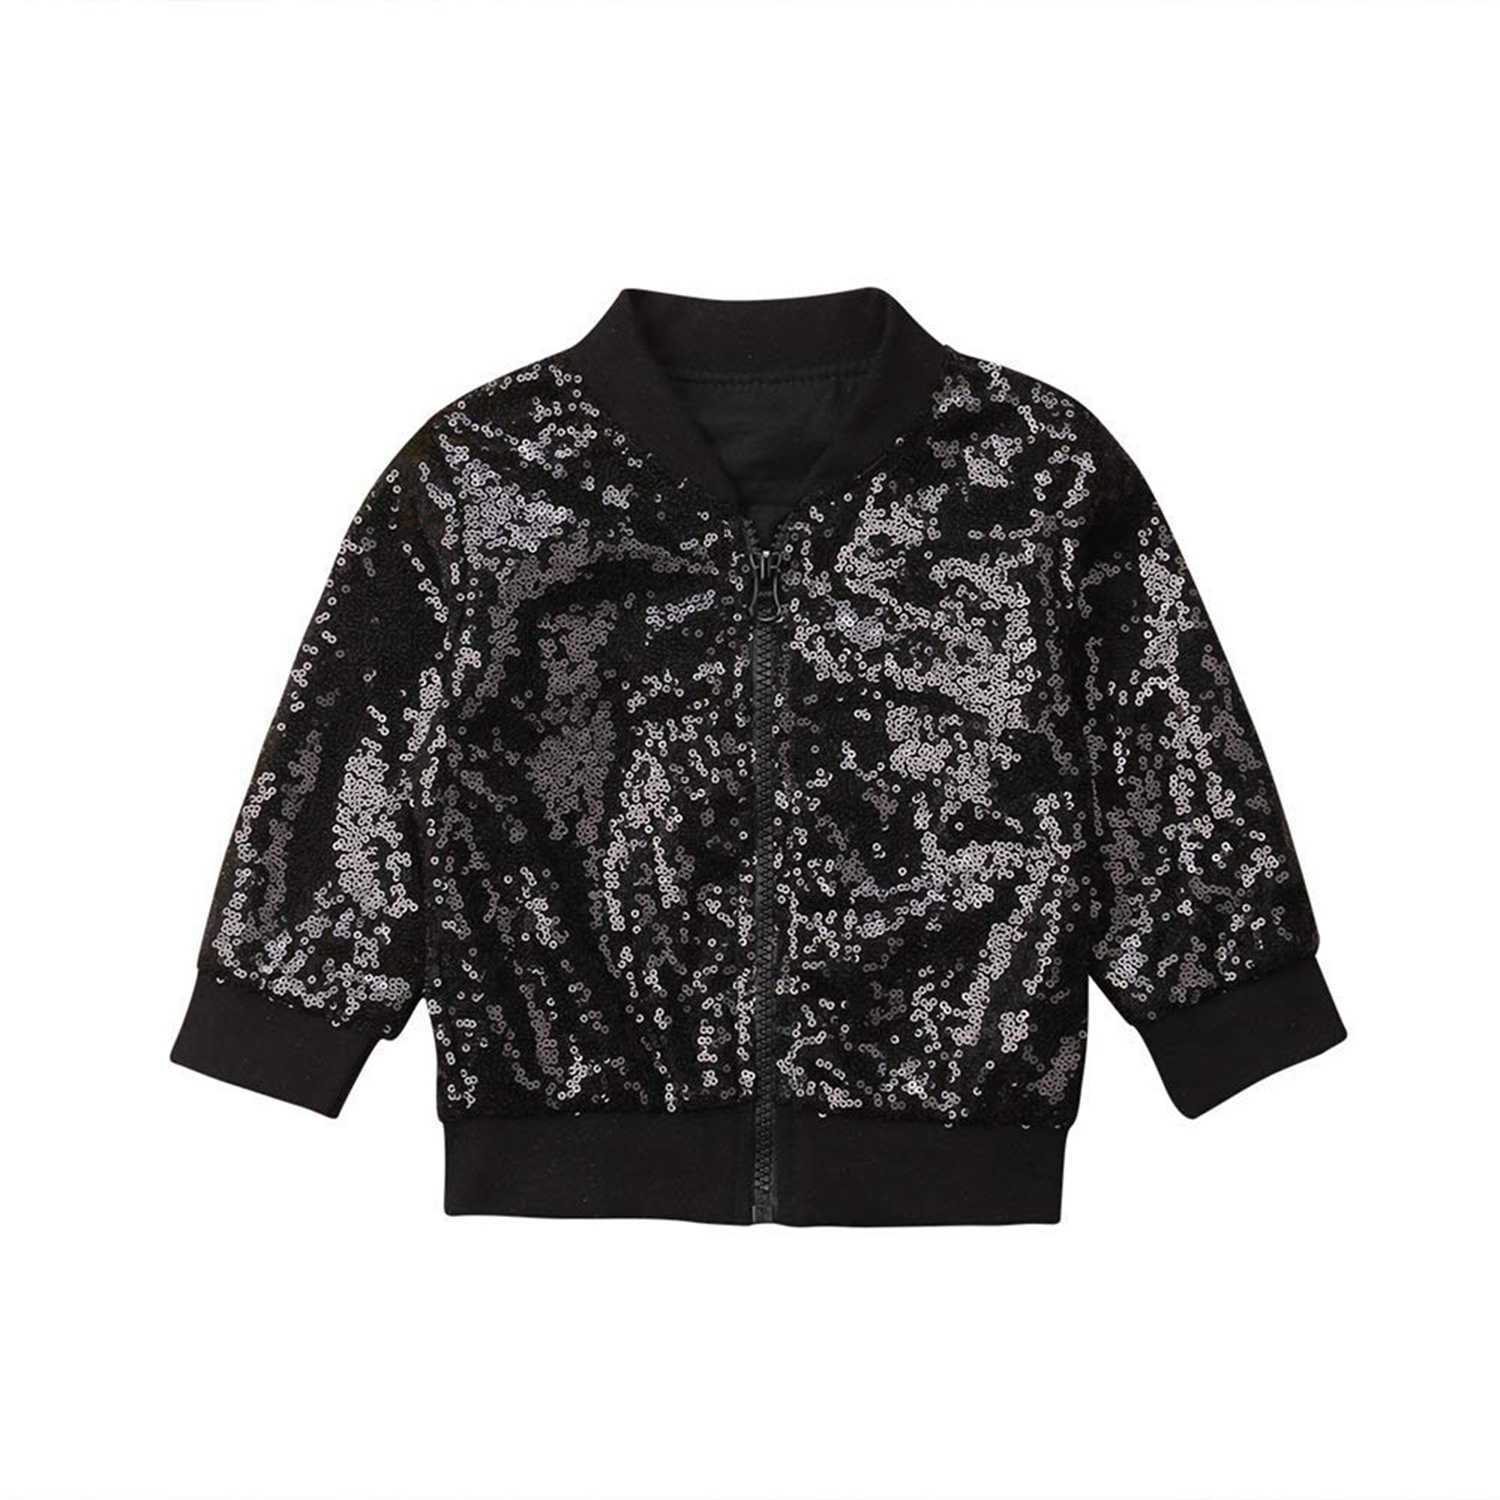 98b5cda57ec8 Toddler Kid Baby Girl Long Sleeve Front Zipper Sequin Bomber ...